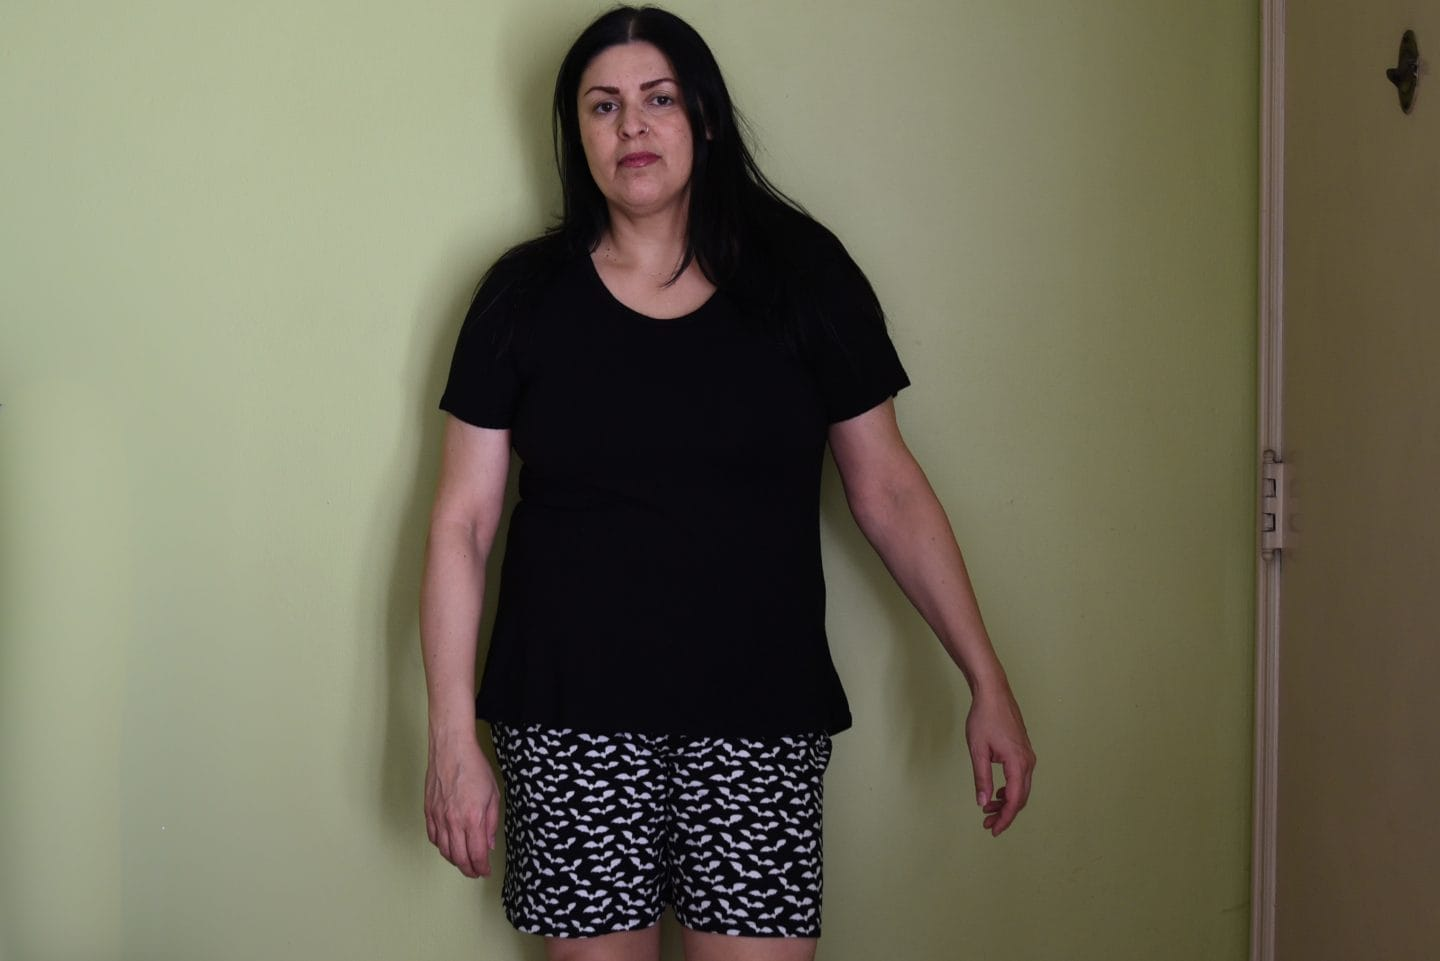 Image of a woman with long black hair standing in front of a green wall wearing a black T-shirt and black shorts with white bats